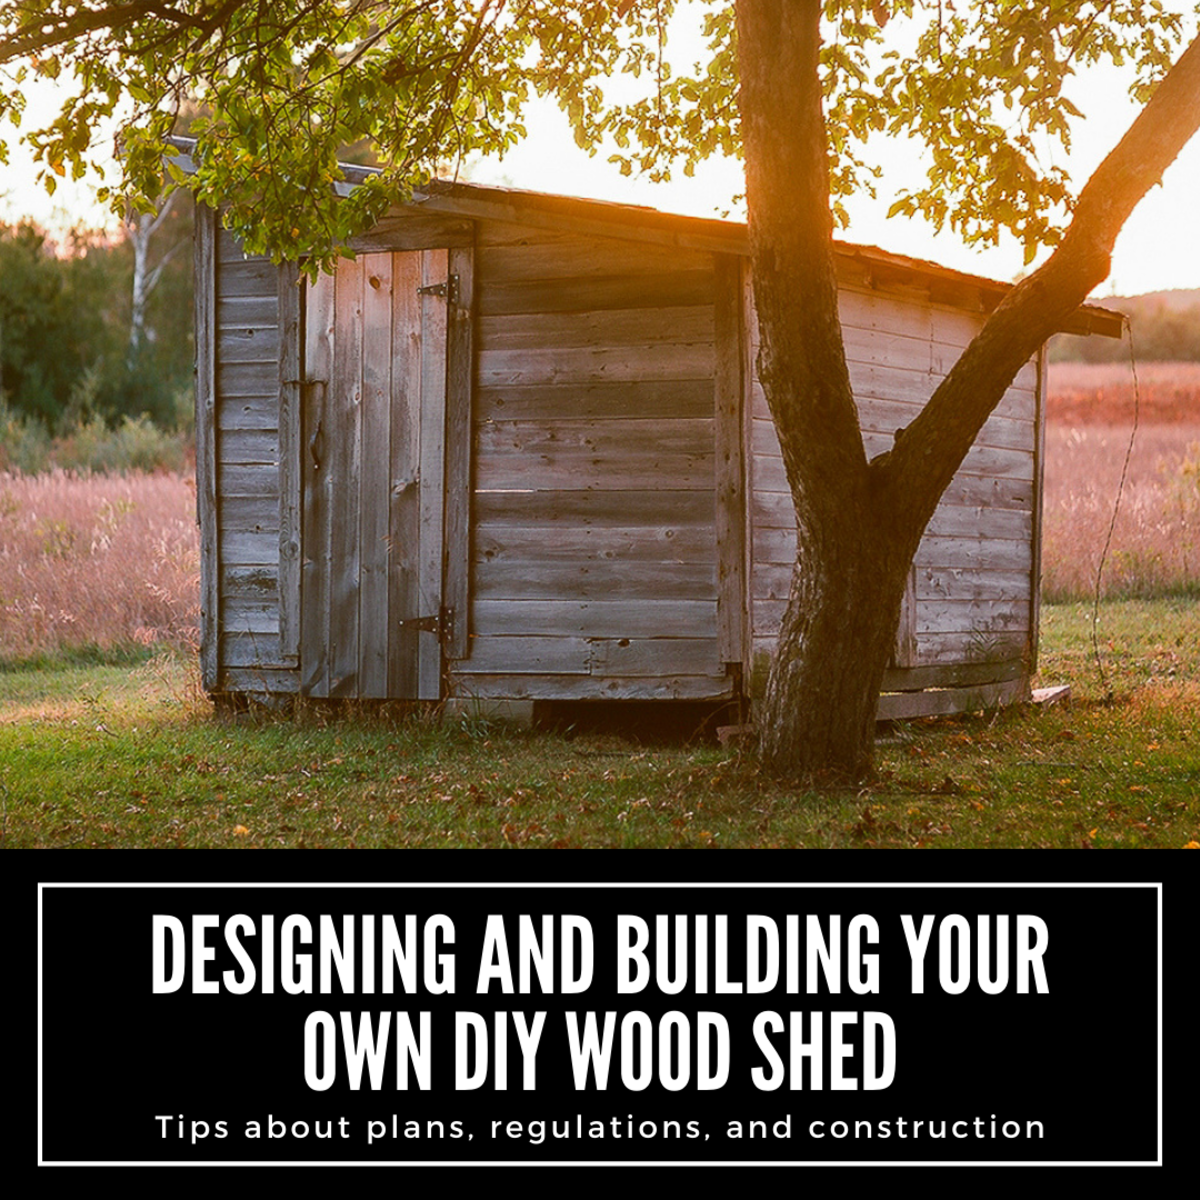 This article will break down the ins and outs of designing, planning, and building your own DIY wood shed.